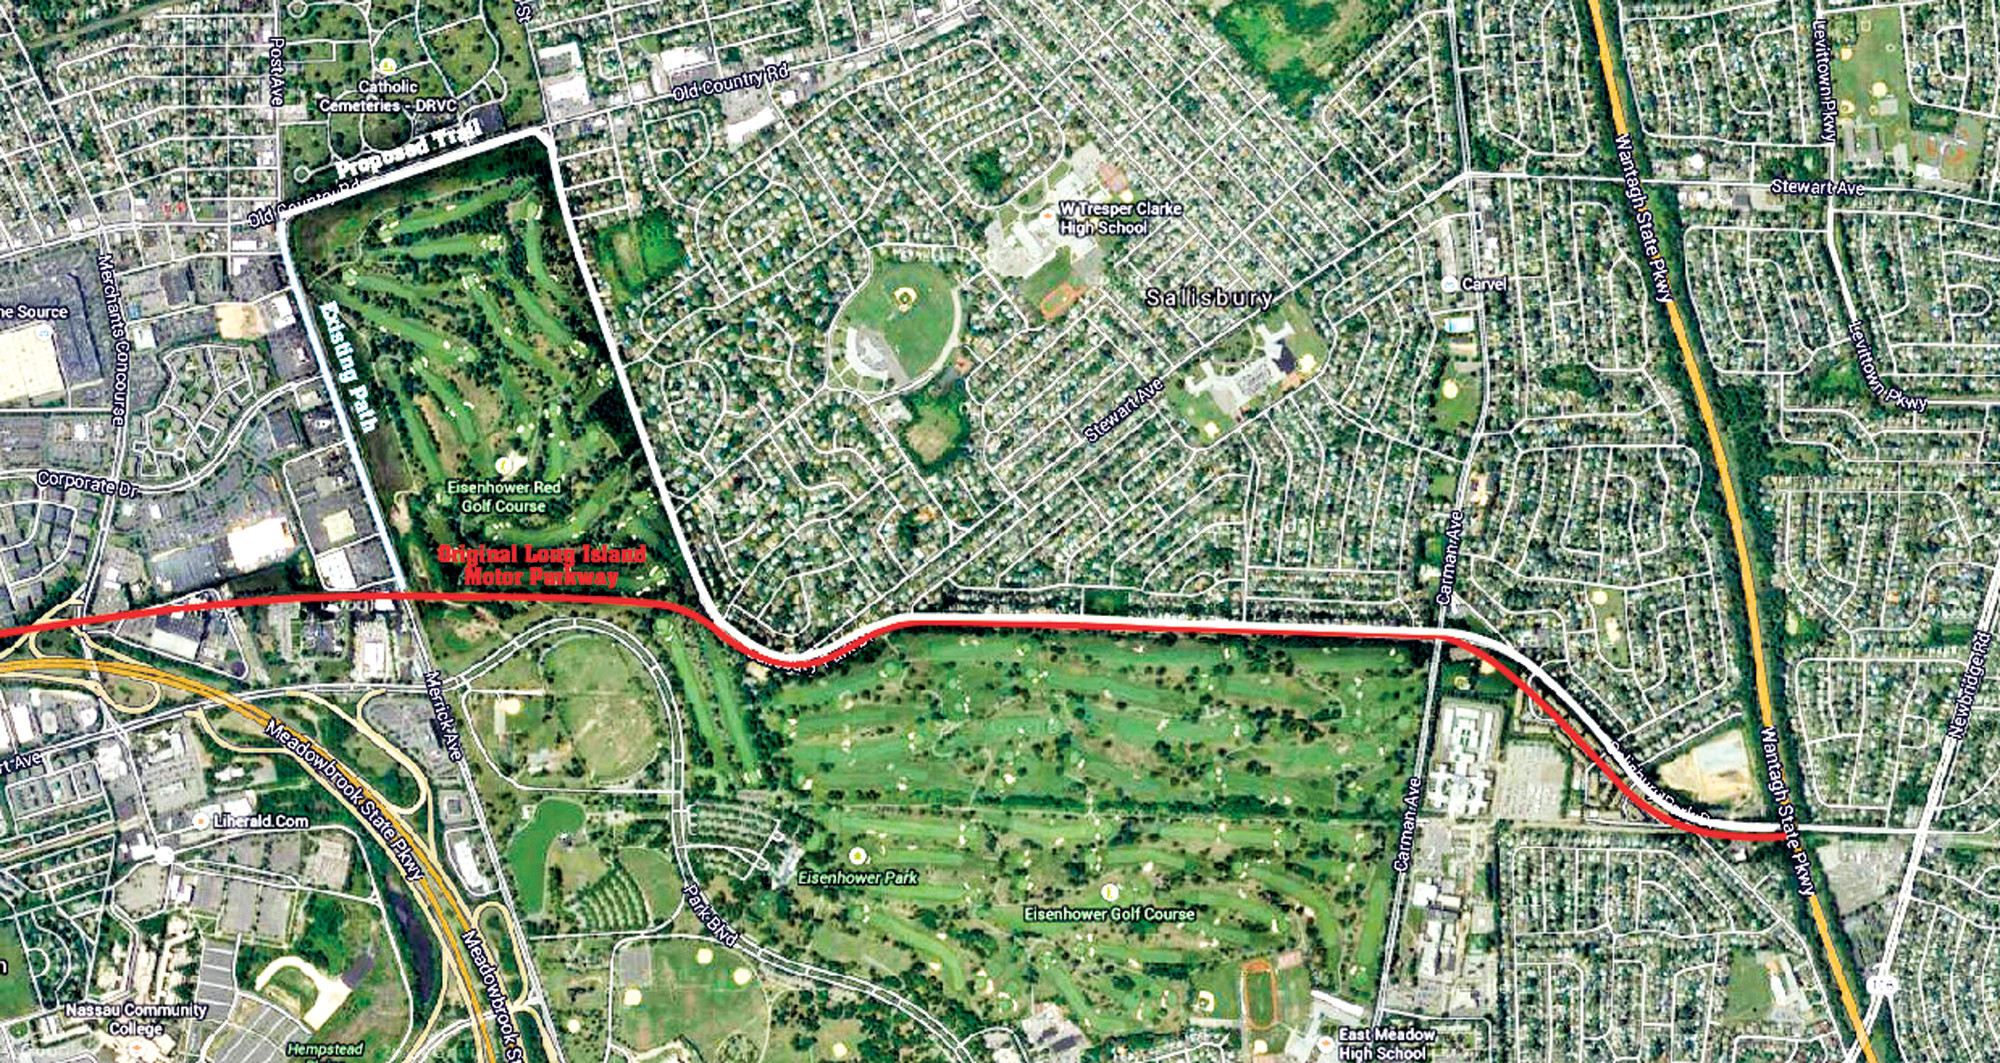 The proposed trail will closely follow the historic Long Island Motor Parkway along Salisbury Park Drive, circling around Eisenhower Park and continuing southeast towards the Wantagh Parkway.